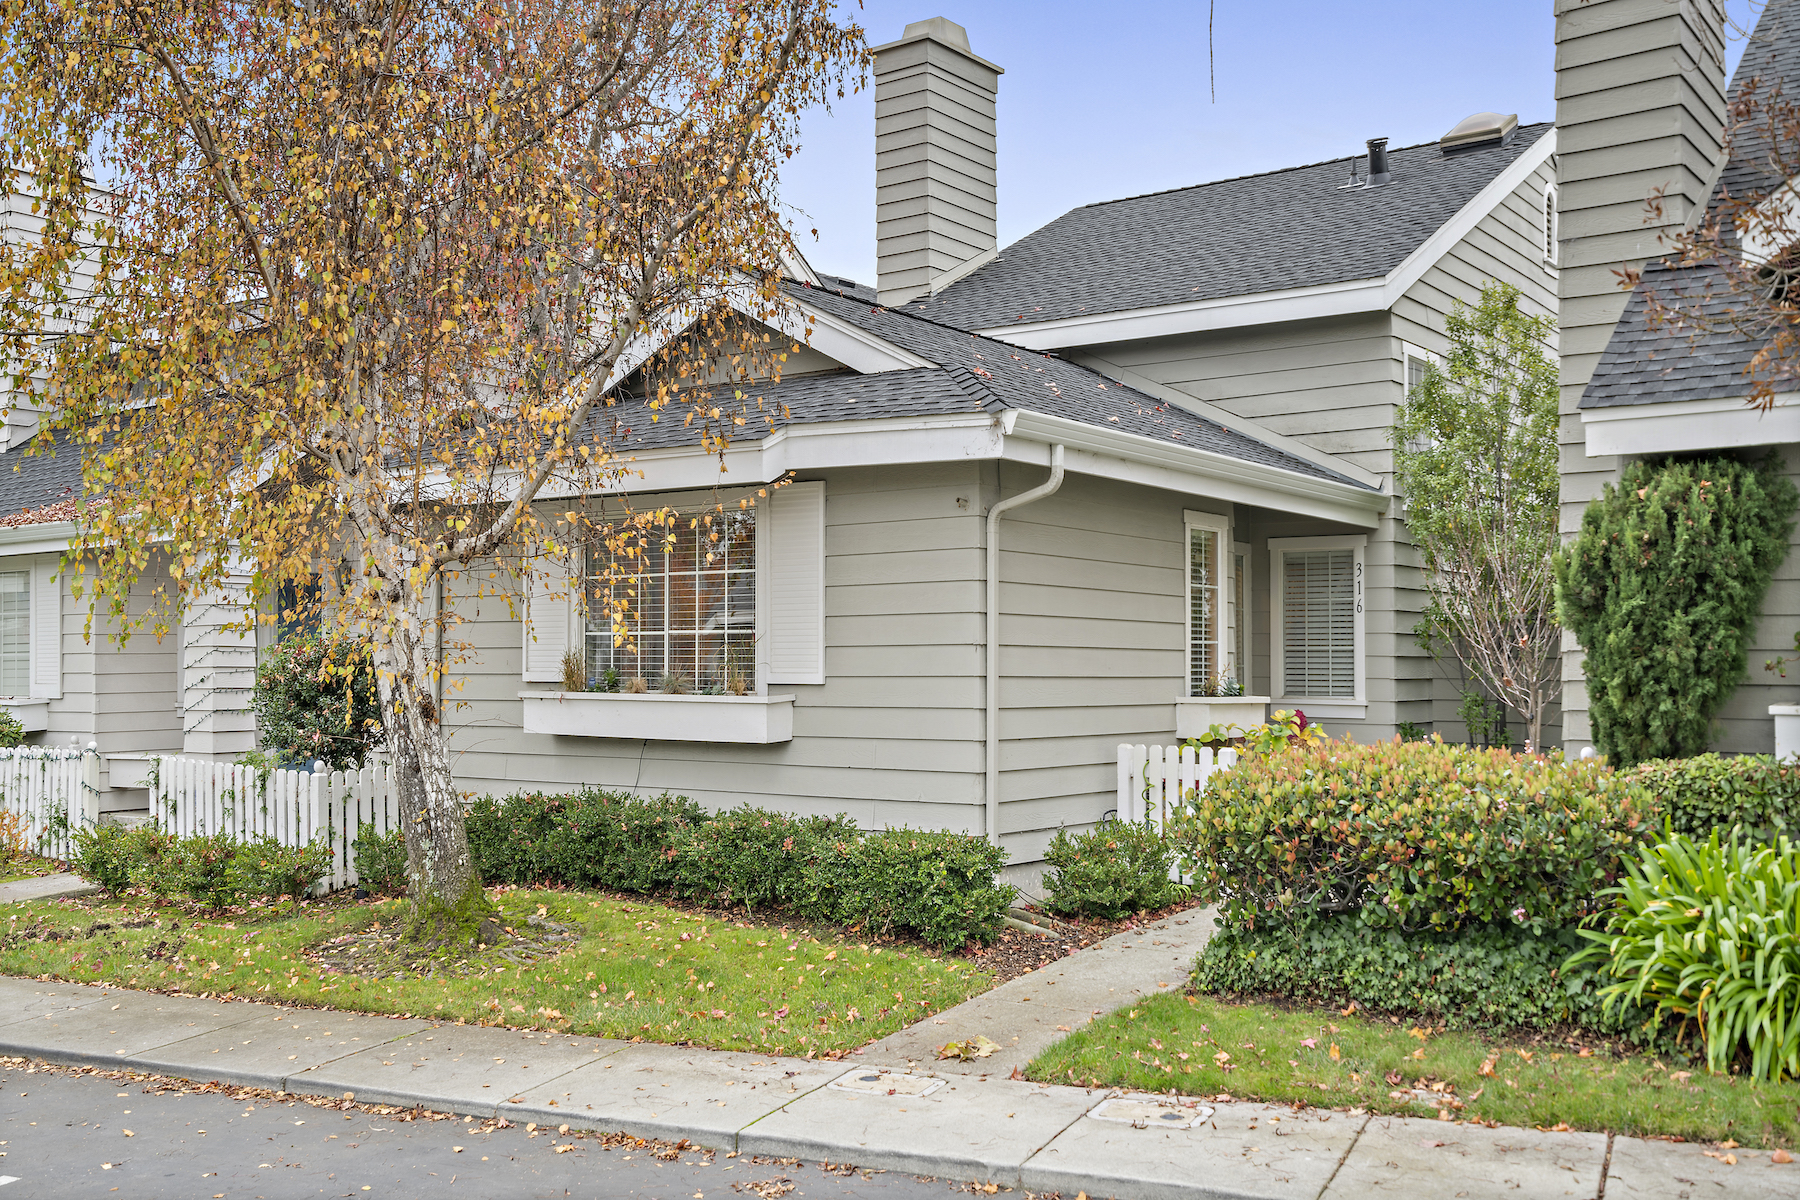 Single Family Home for Active at Lovely Home in Redwood Shores Neighborhood 316 Sea Cliff lane Redwood City, California 94065 United States